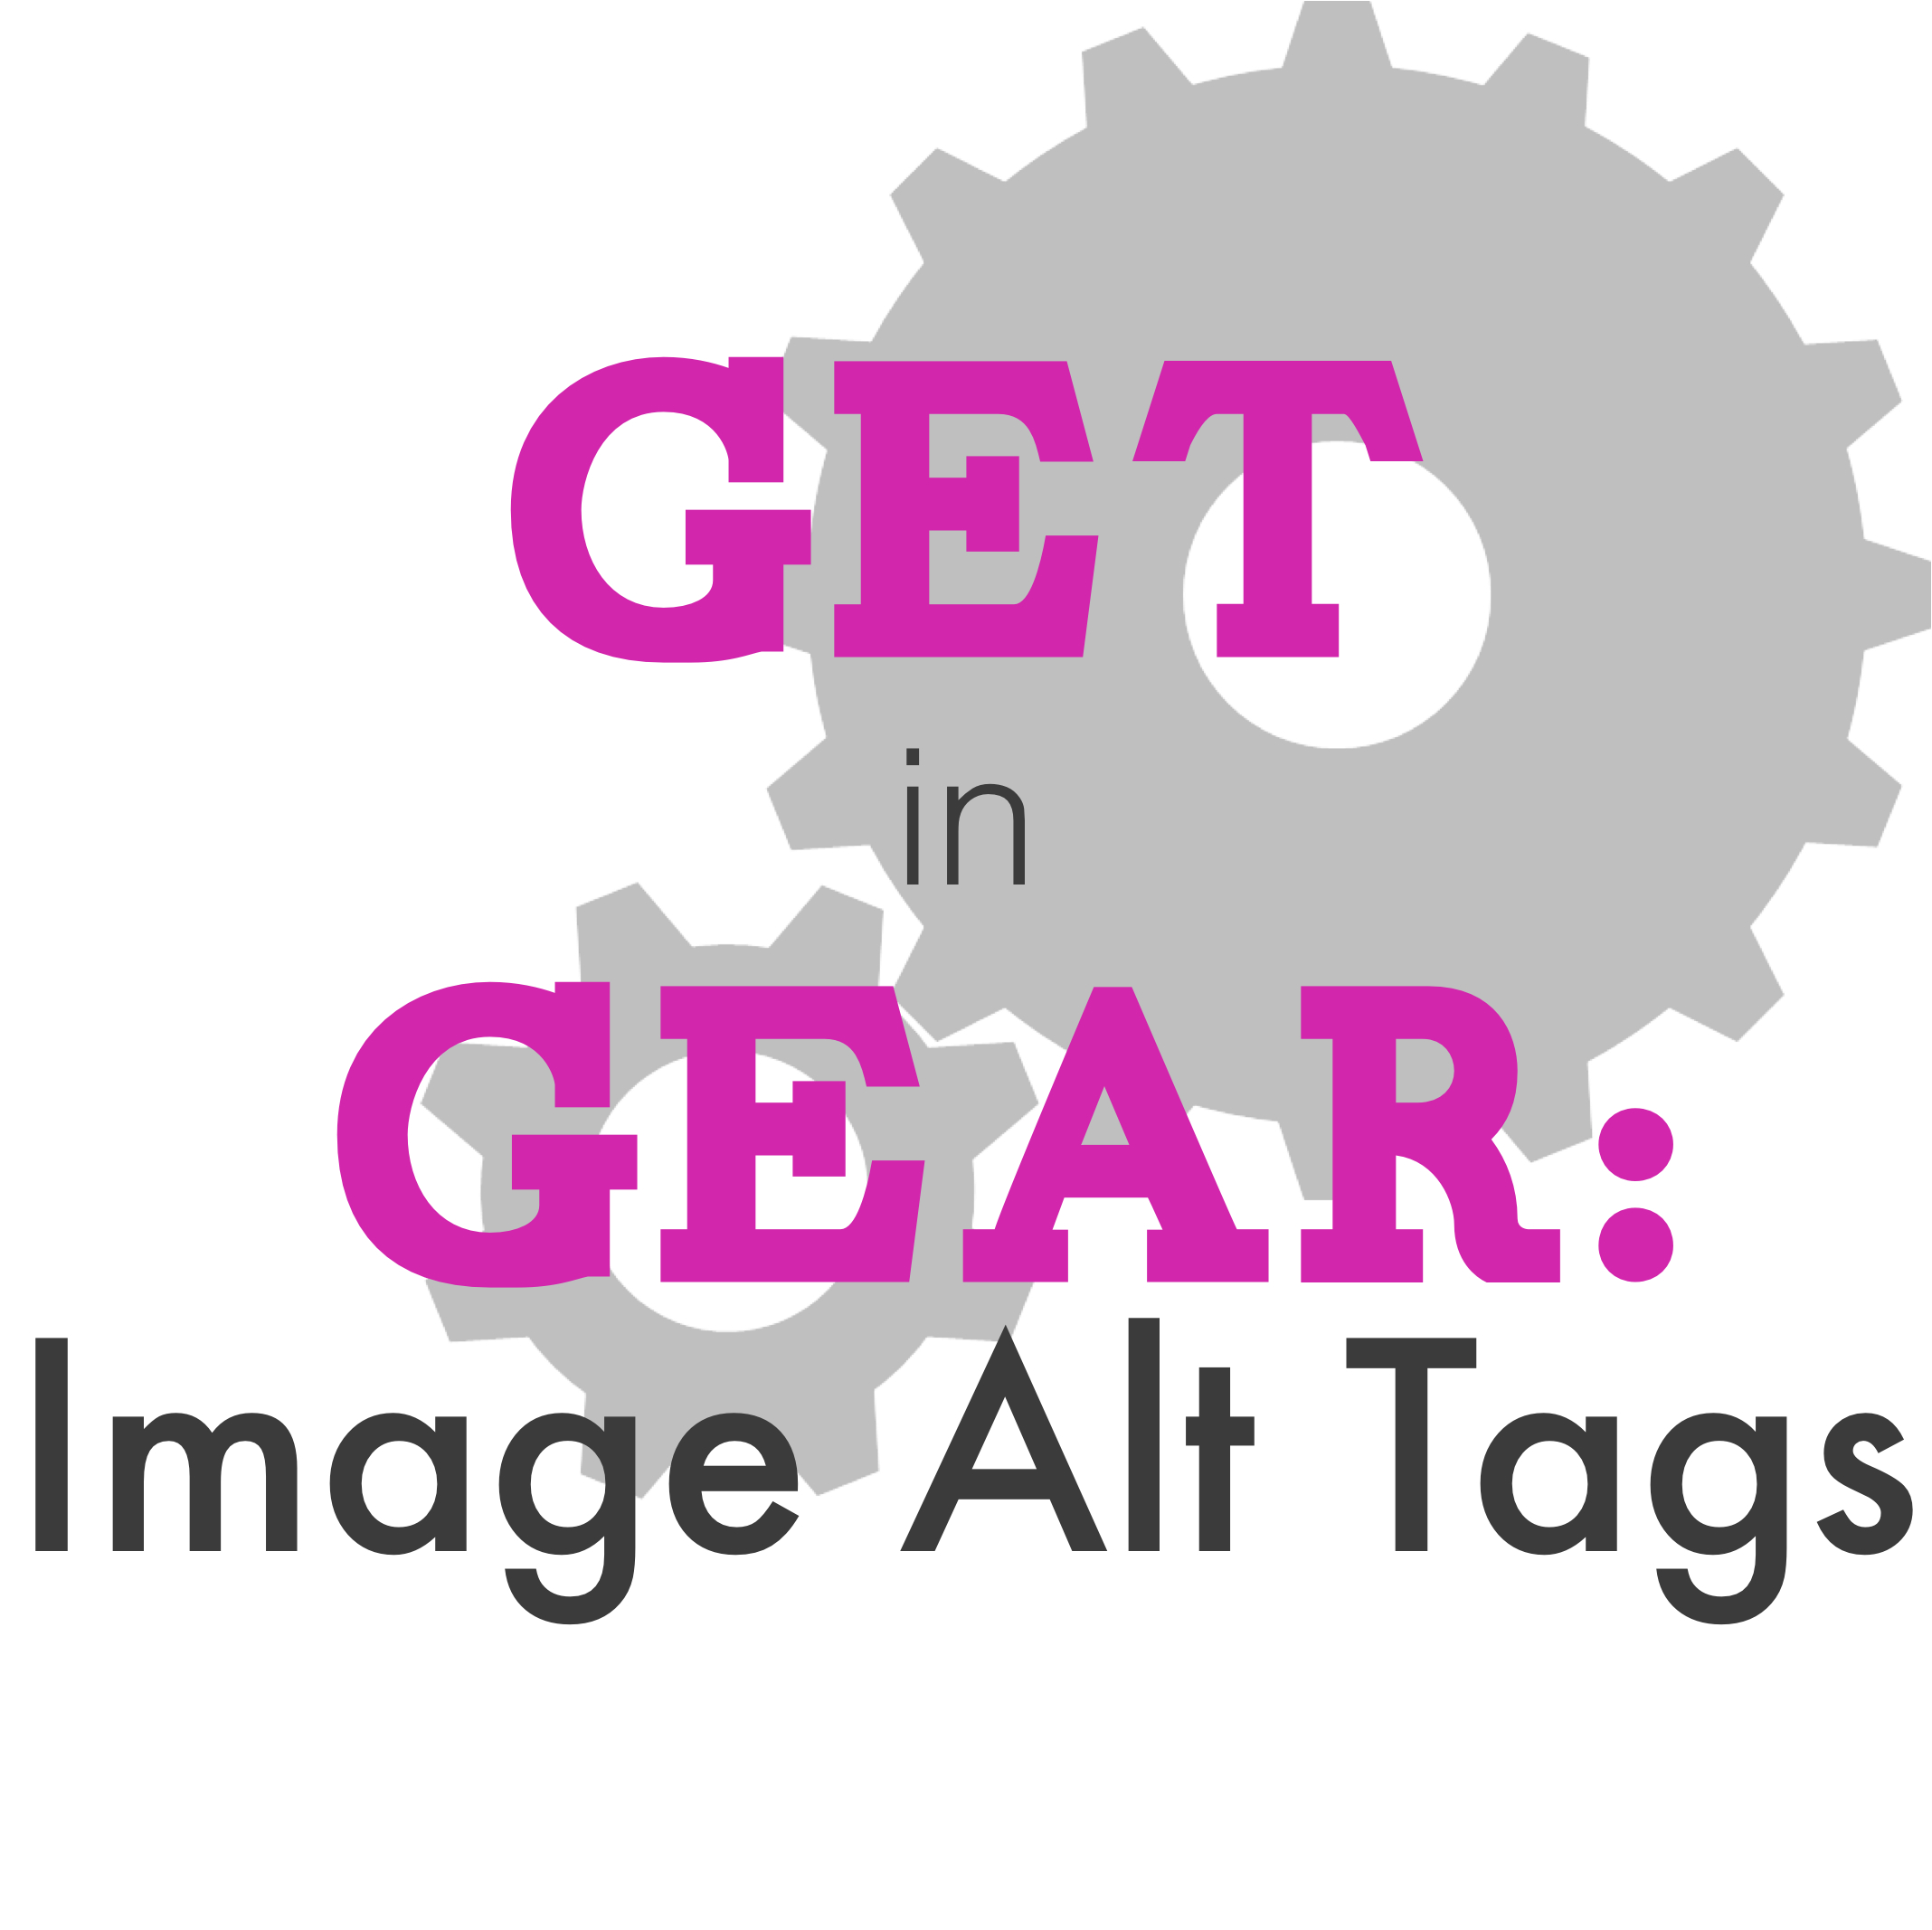 How Image Alt Tags work for your small business